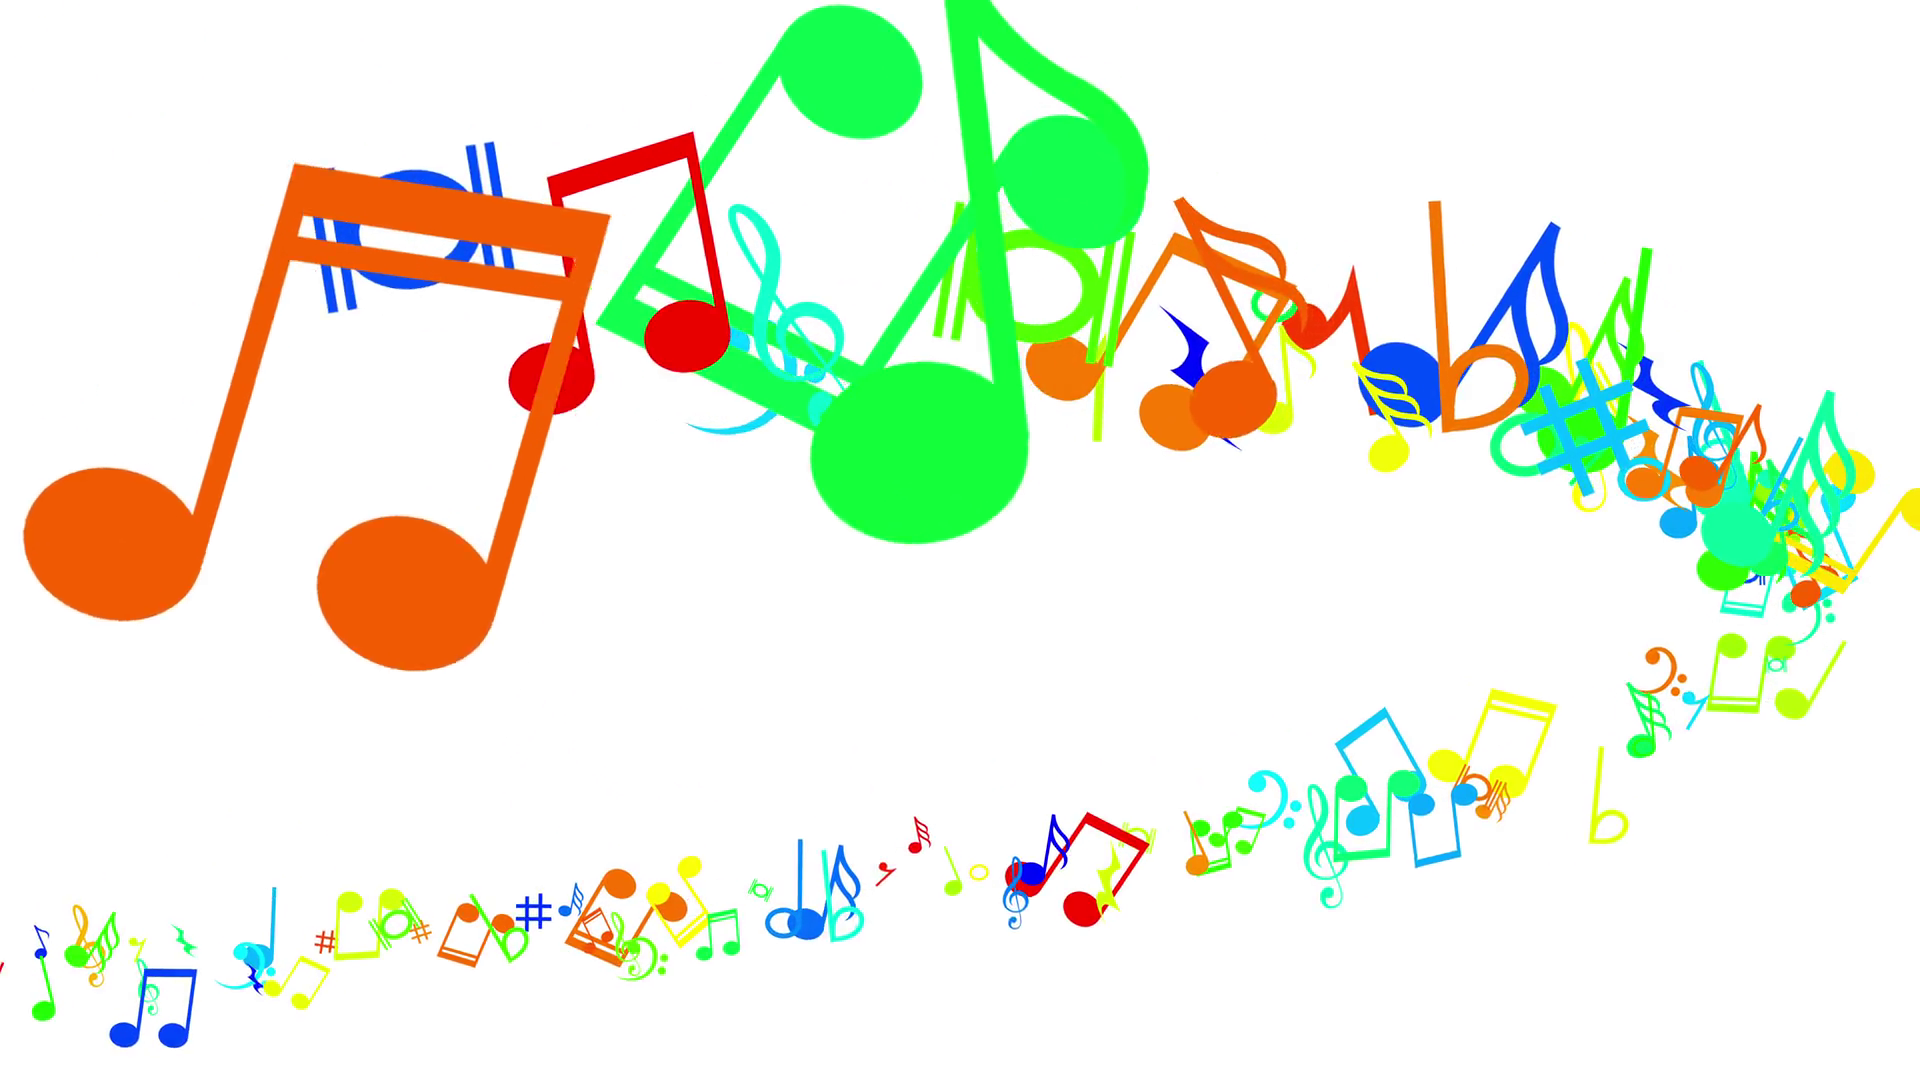 Animated music clipart svg free stock Animated music notes clipart 5 » Clipart Portal svg free stock